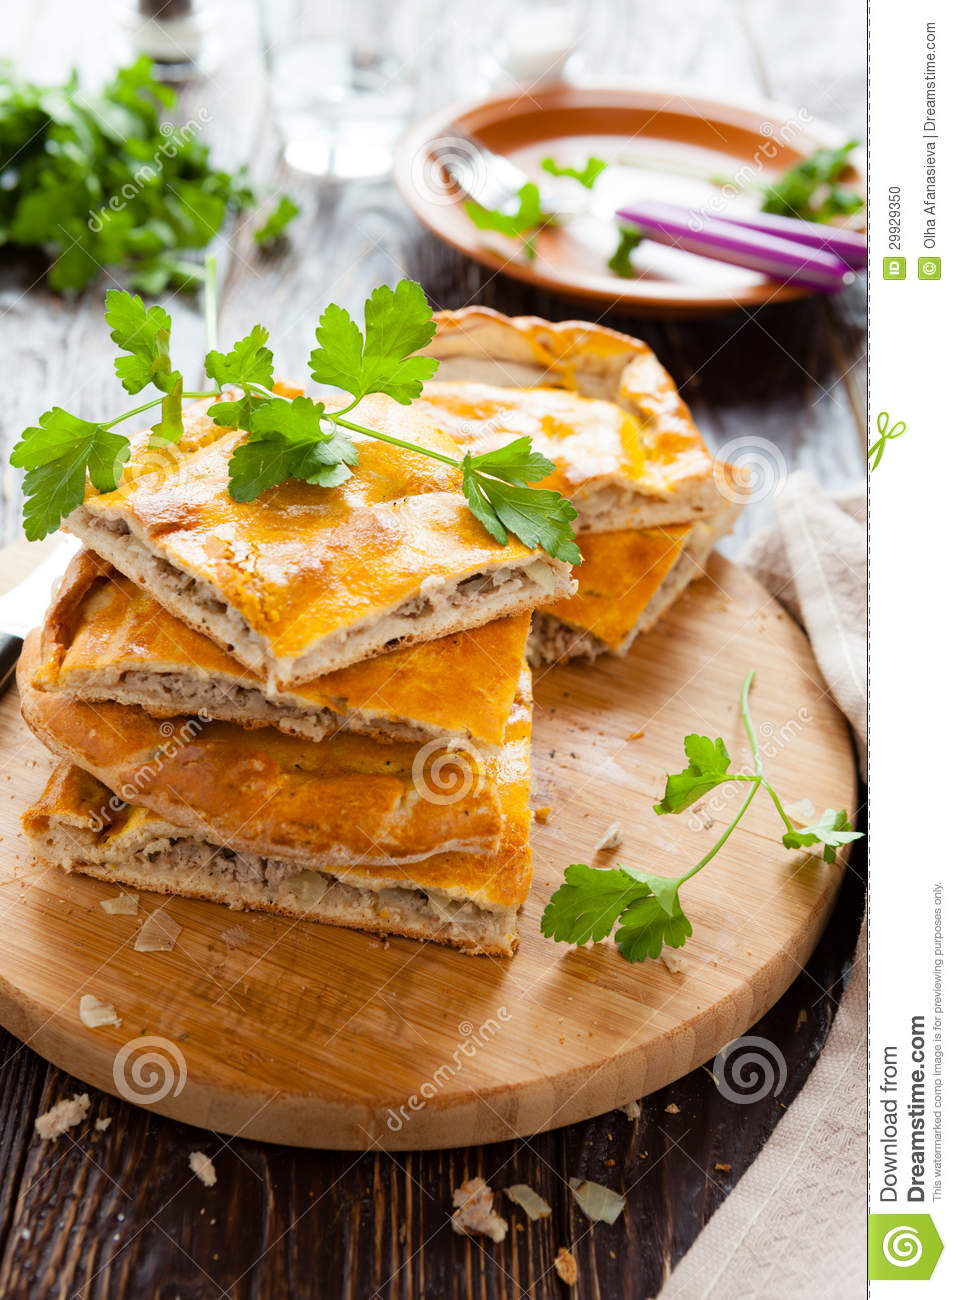 Tasty Meat Pie Pieces And Parsley Stock Photo - Image: 29929350